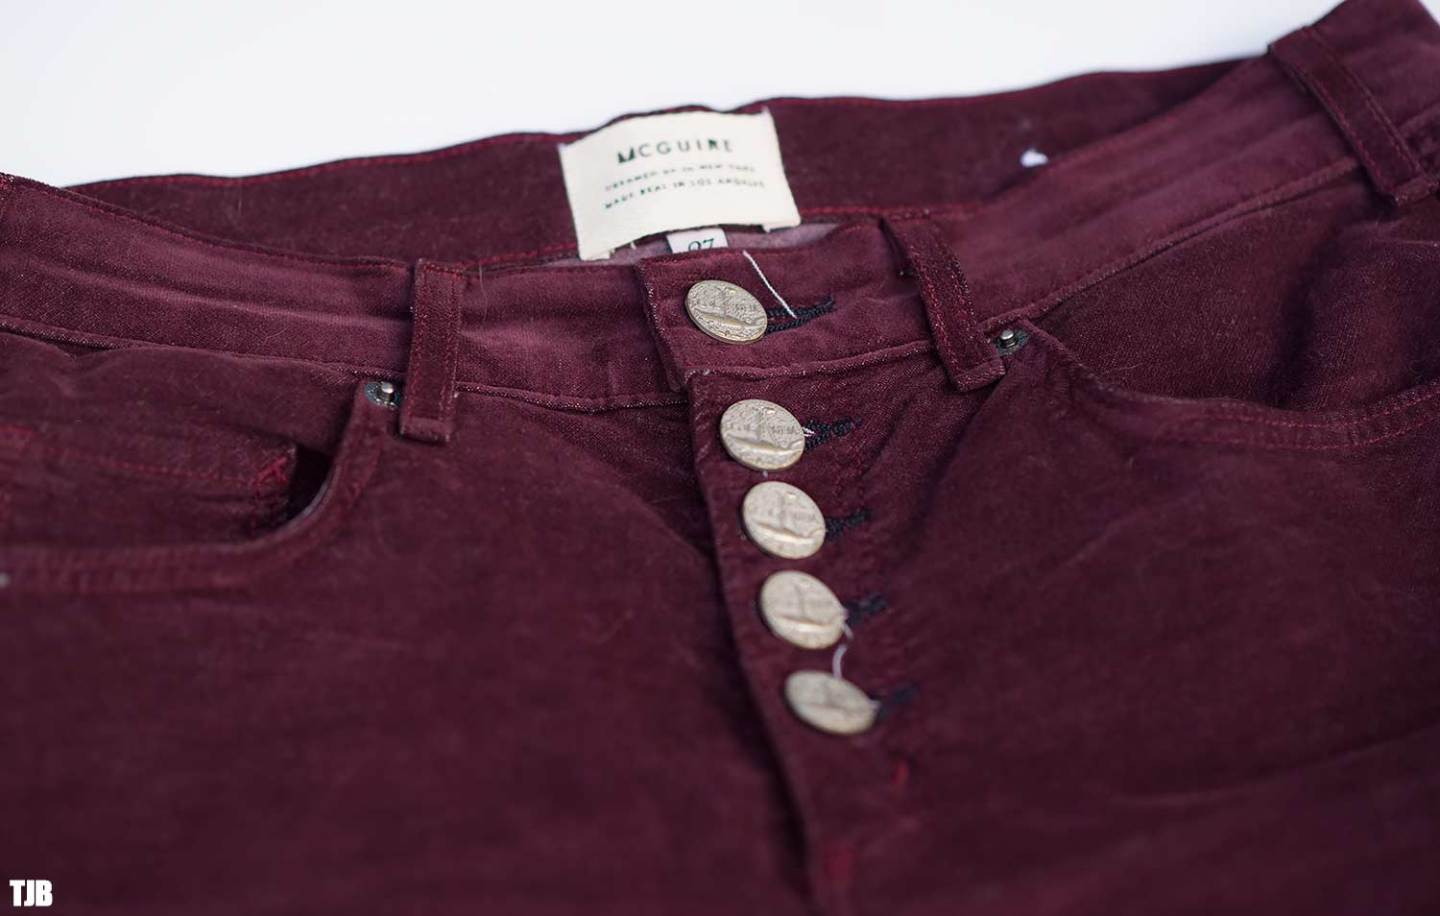 mcguire-denim-newton-exposed-button-skinny-pants-in-pinot-review-2